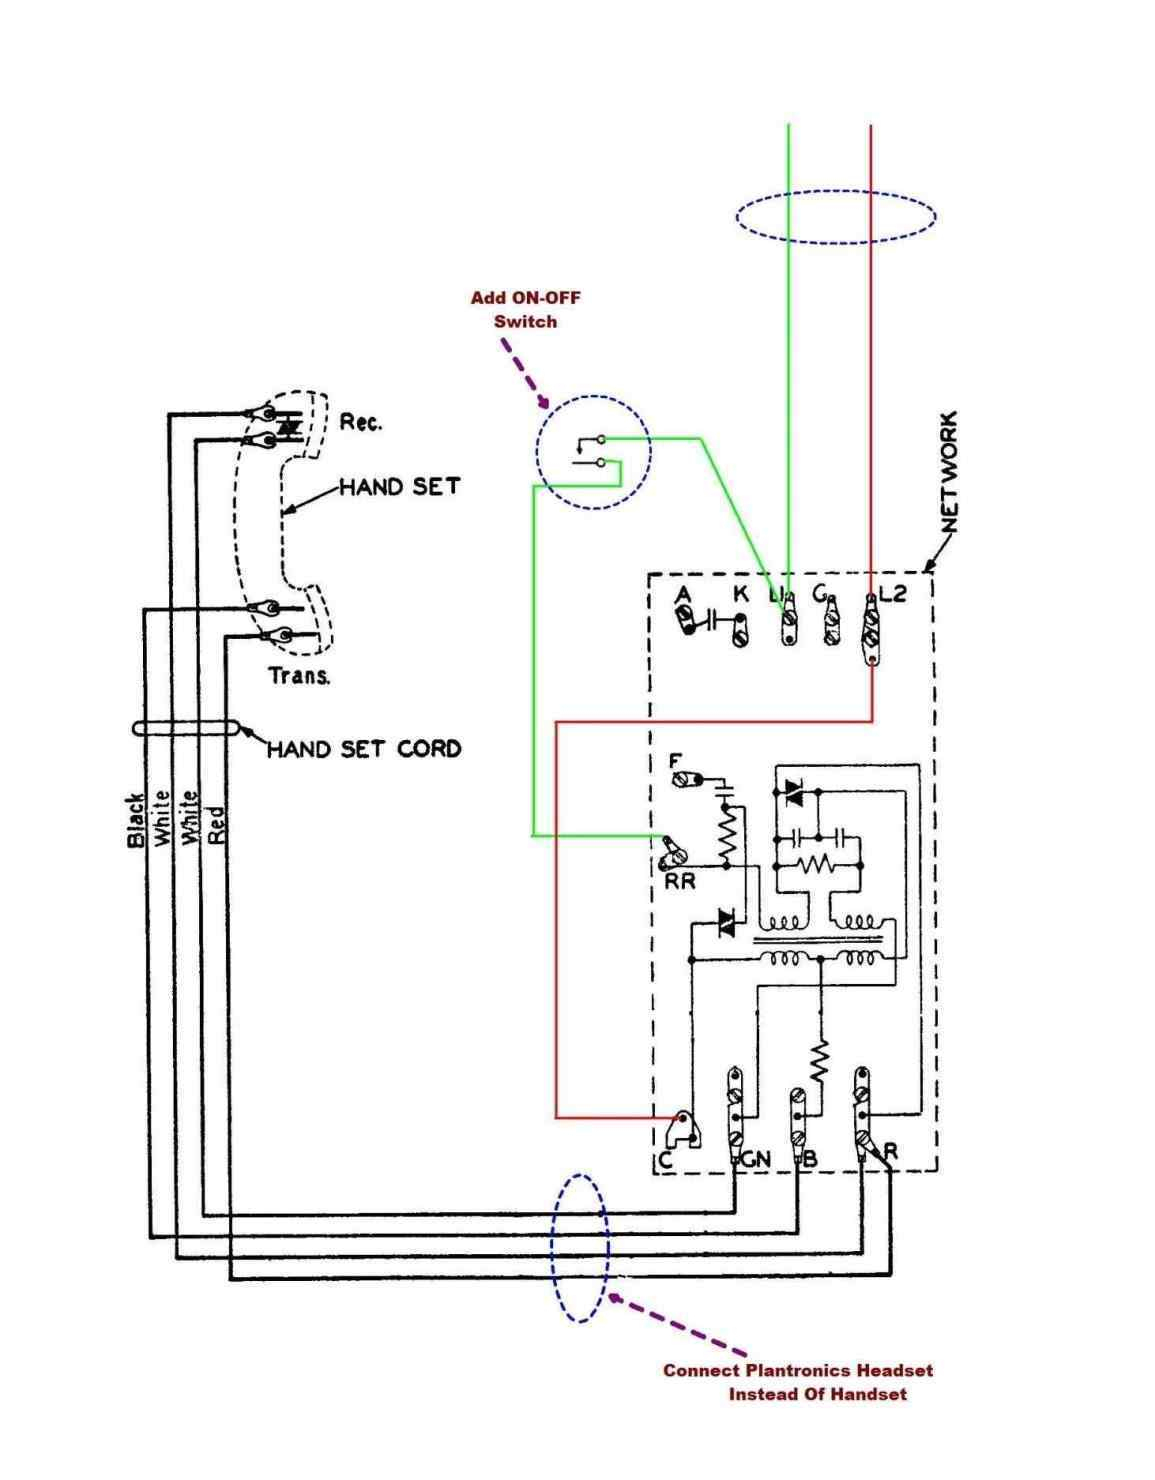 Usb Microphone Wiring Diagram | Wiring Library - Usb Microphone Wiring Diagram